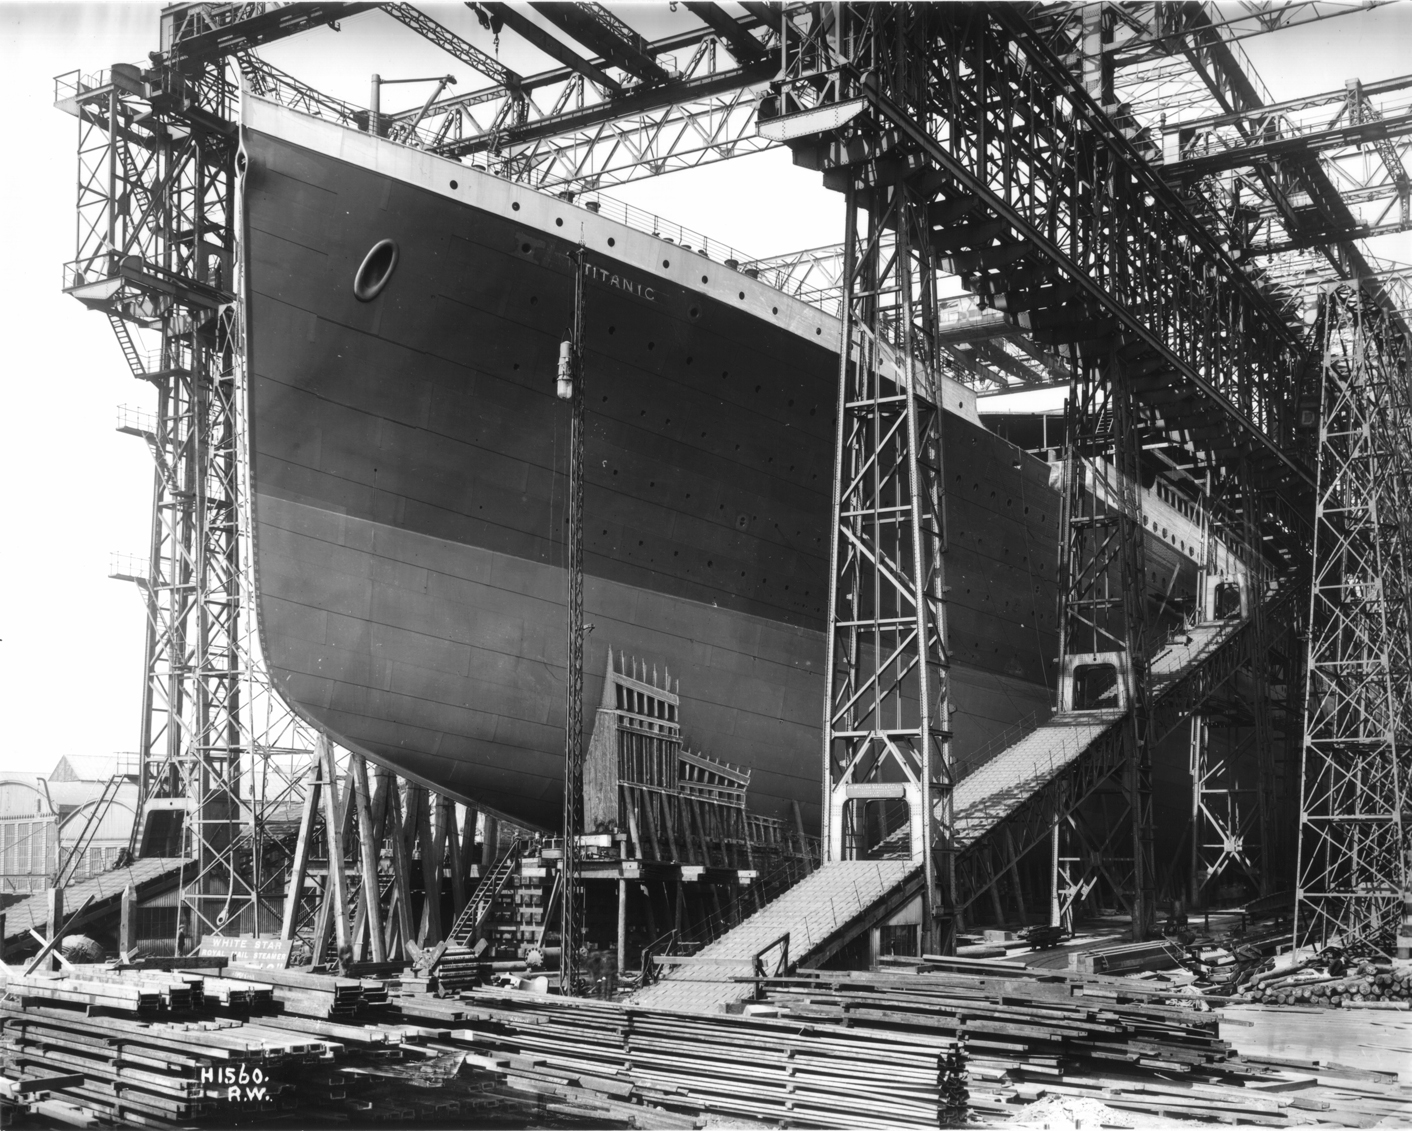 Titanic ready for launch at Harland & Wolff, Belfast, 1911